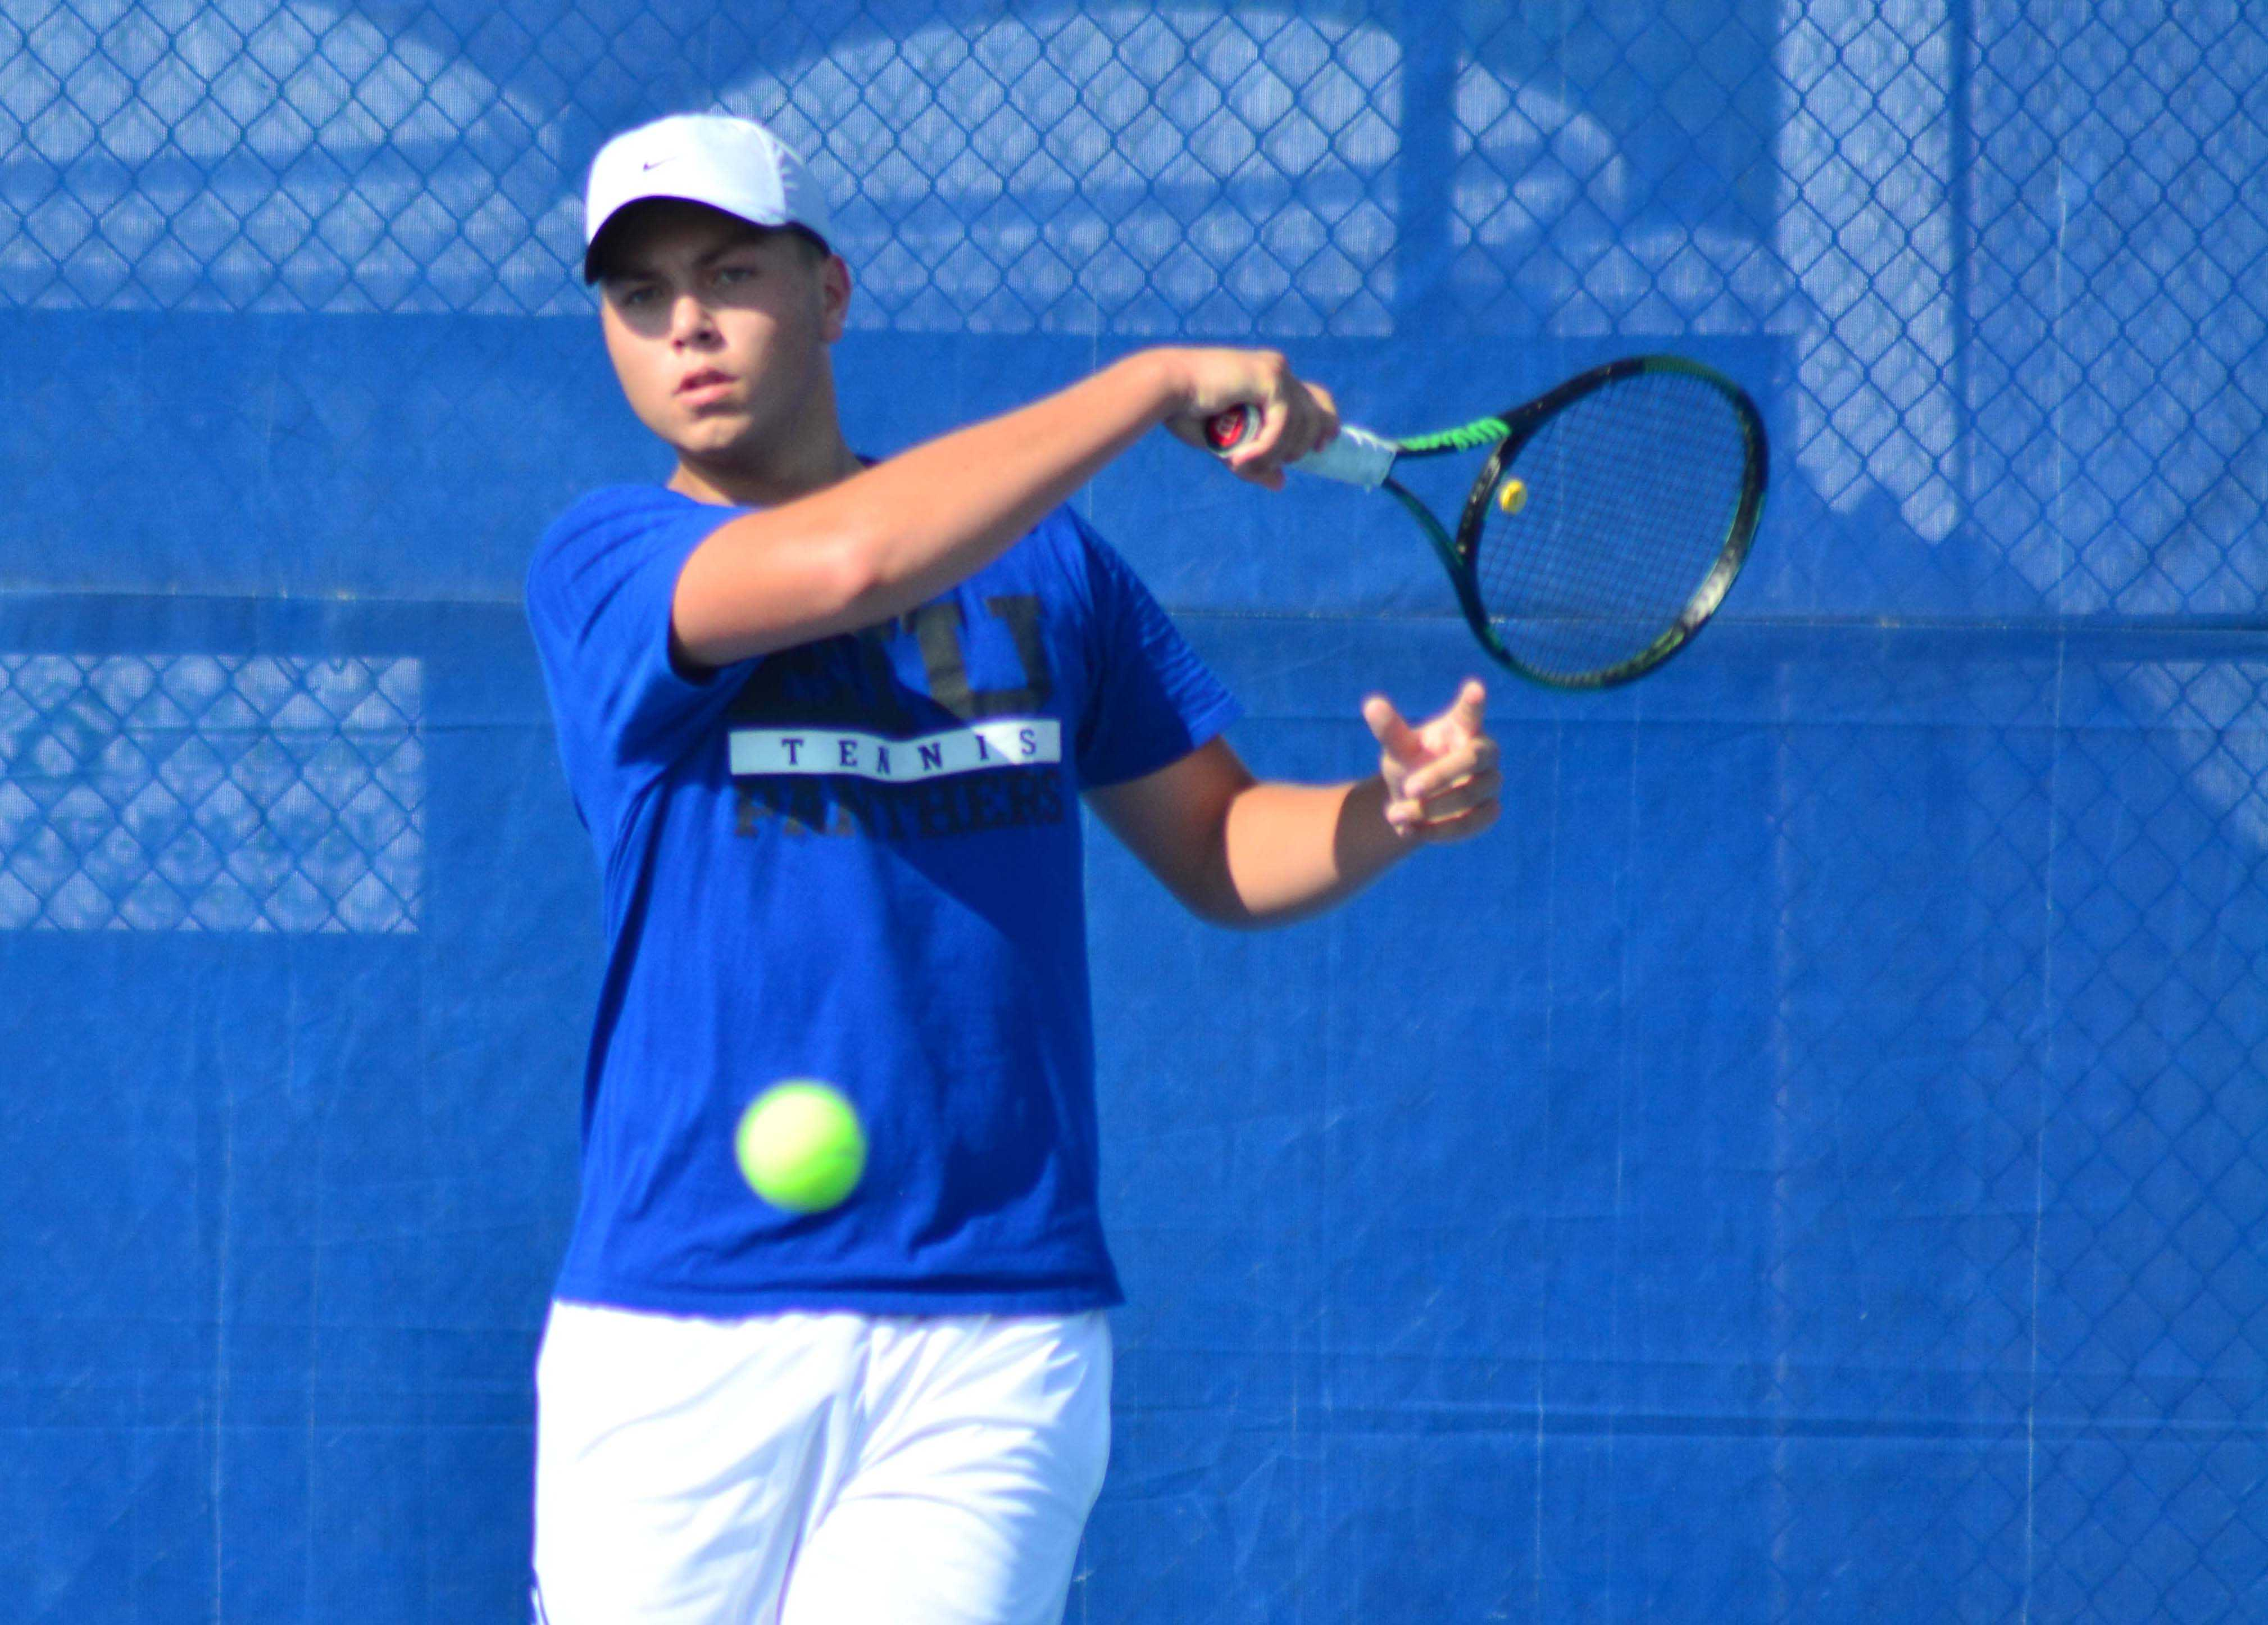 Freshman Gage Kingsmith returns a serve during a practice Tuesday, Sept. 6. Kingsmith currently sports a 1-13 individual record and 5-9 in doubles play with different teammates.